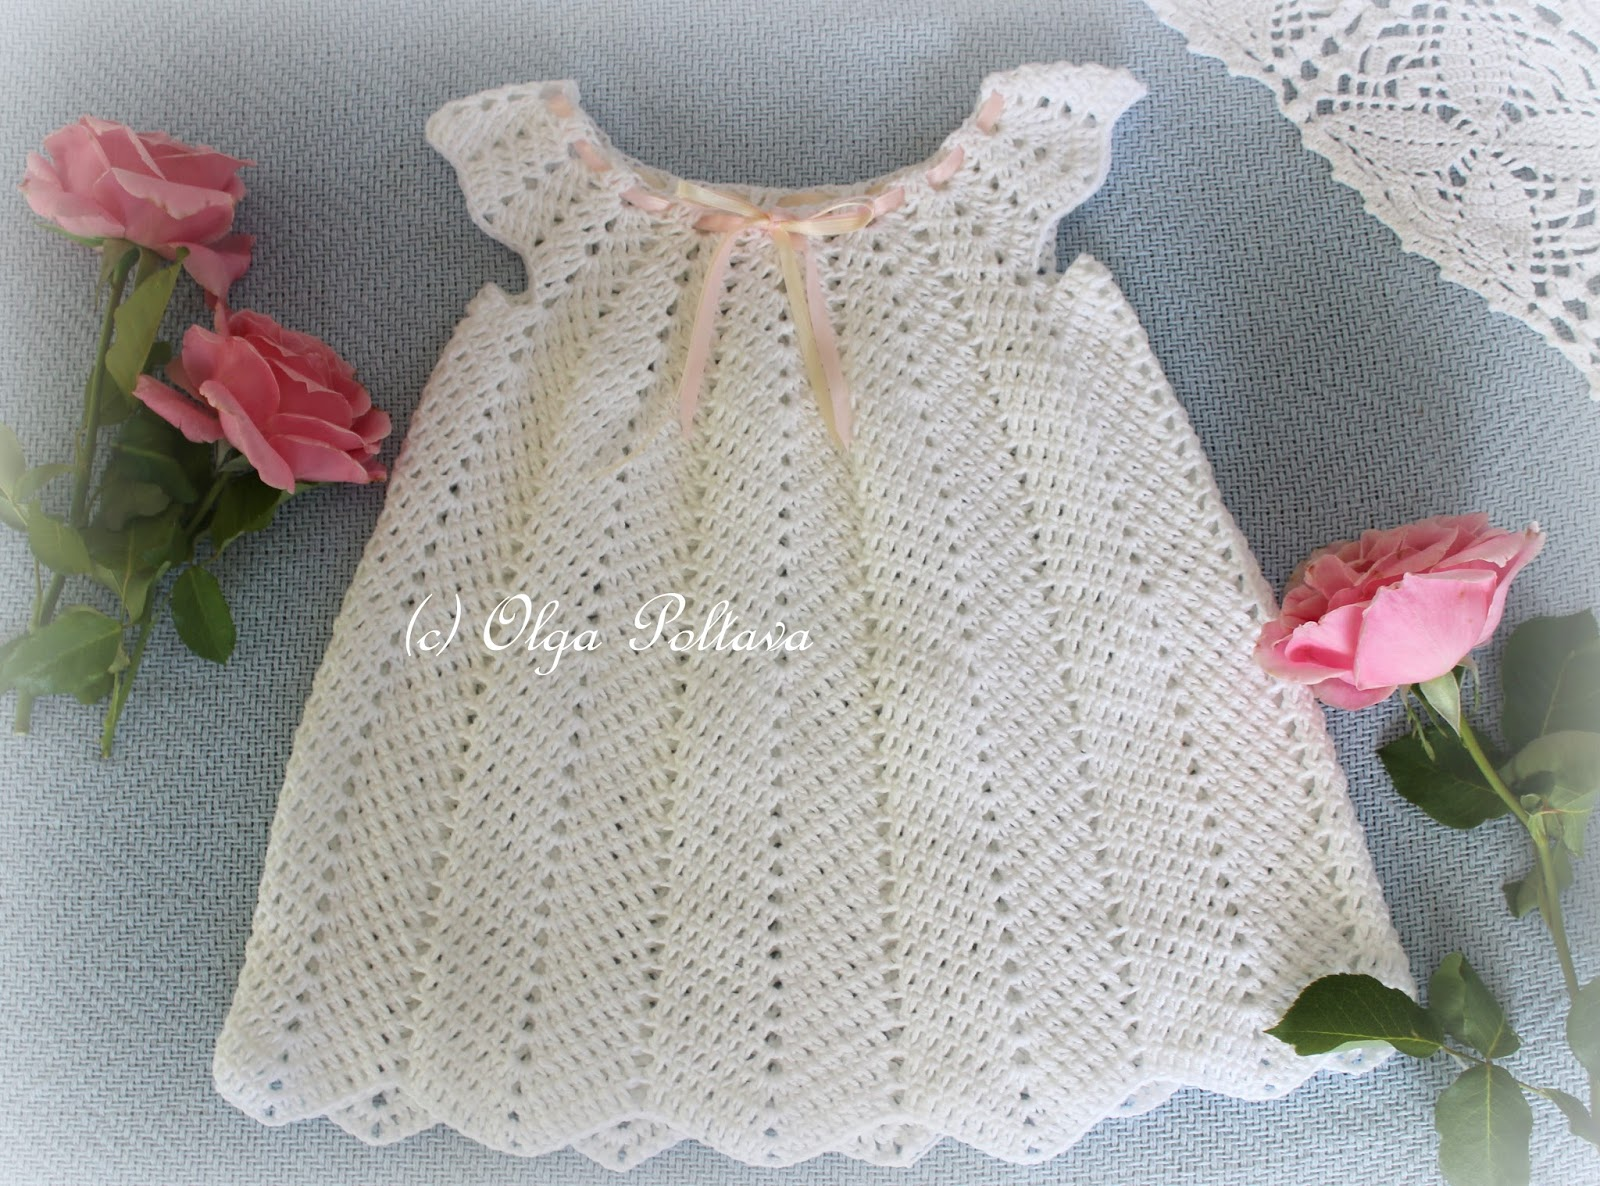 Lacy Crochet: White Ripple Baby Dress, Size 12-18 Months, Crochet ...